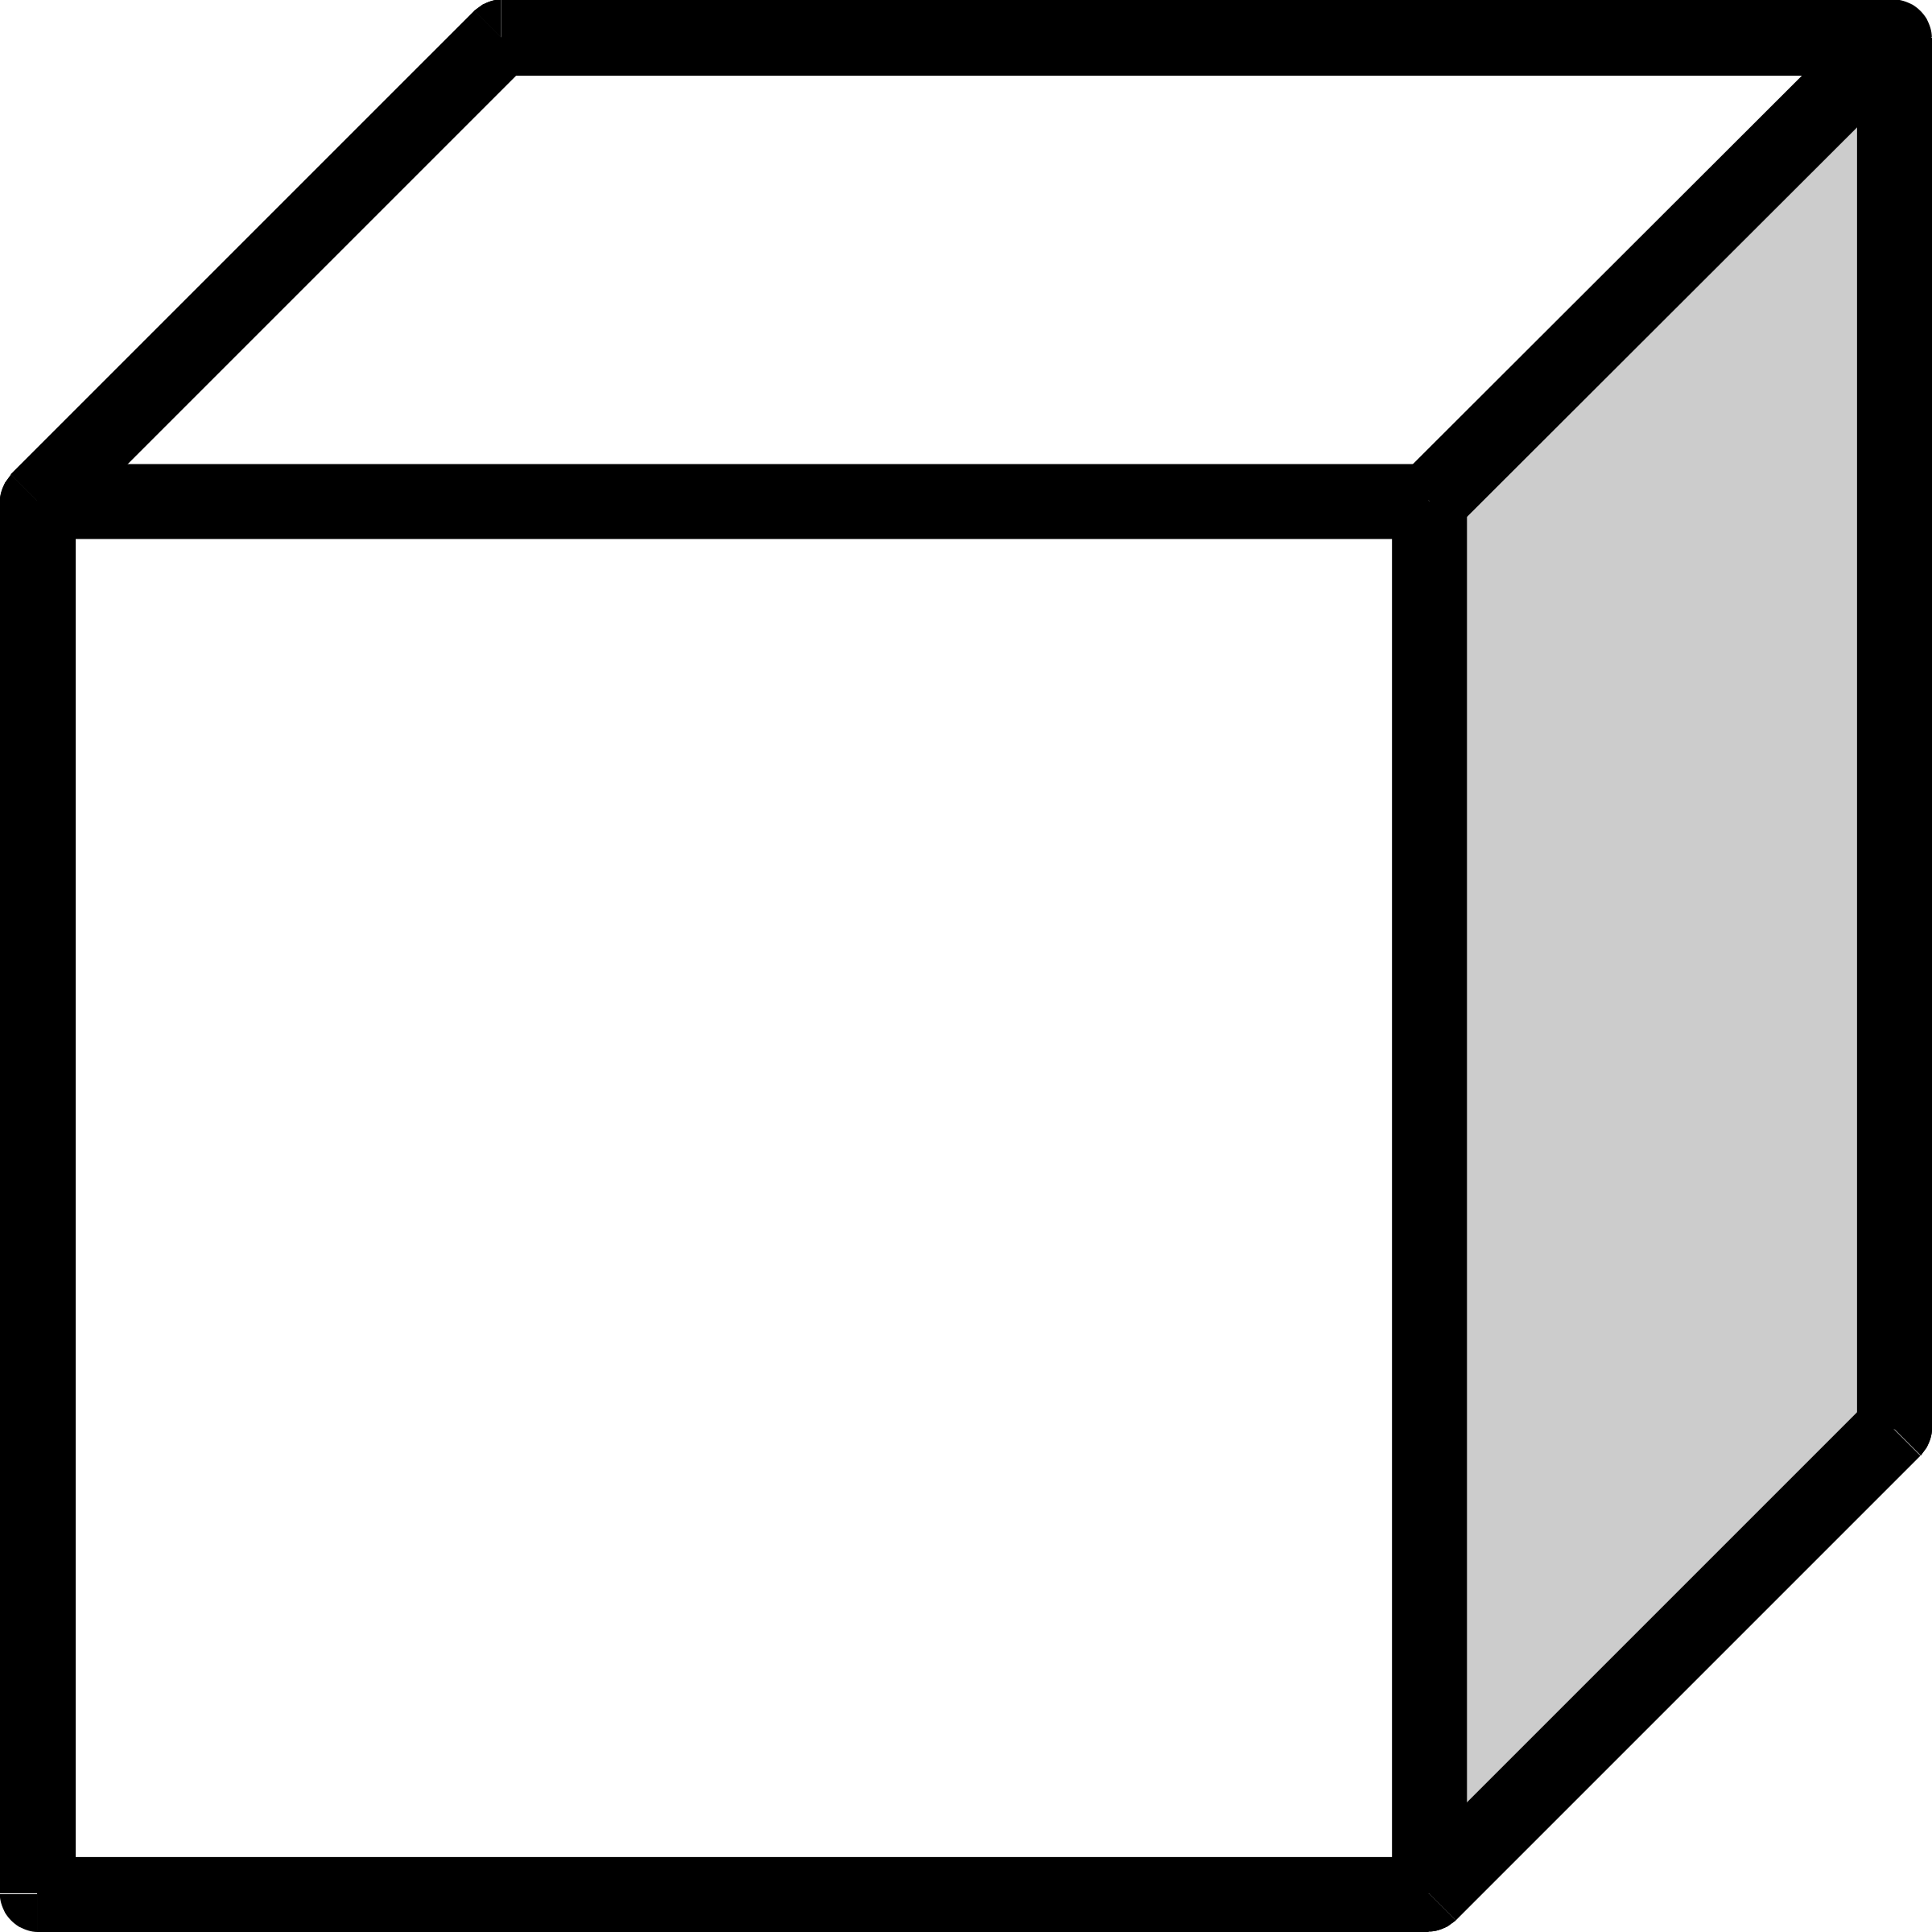 2400x2400 Cube clipart black and white